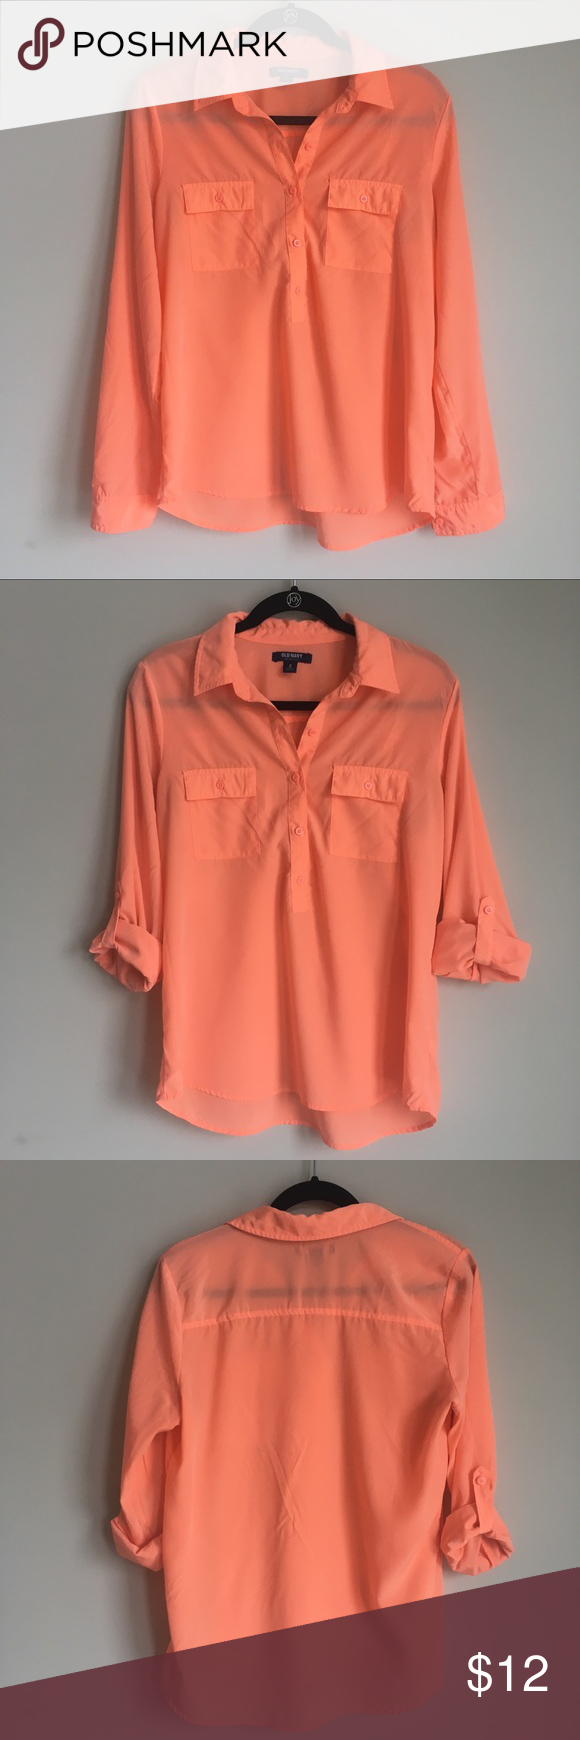 6a264db6 Old Navy bright peach button down shirt Old Navy button down shirt in a  bright orange/peach color. Has two pockets on the chest with button closure.